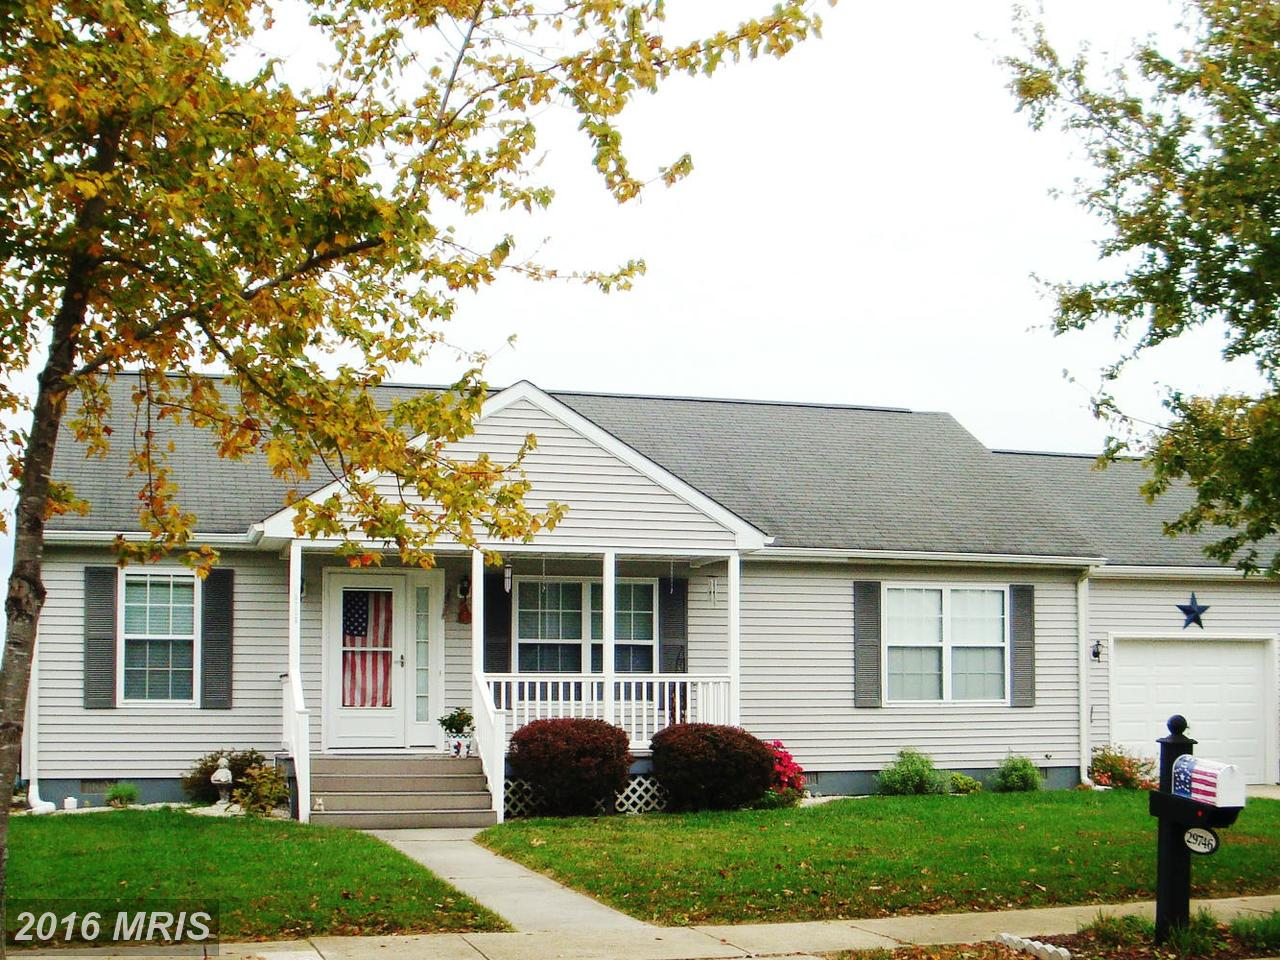 Homes For Sale In The Waylands Subdivision Easton Md